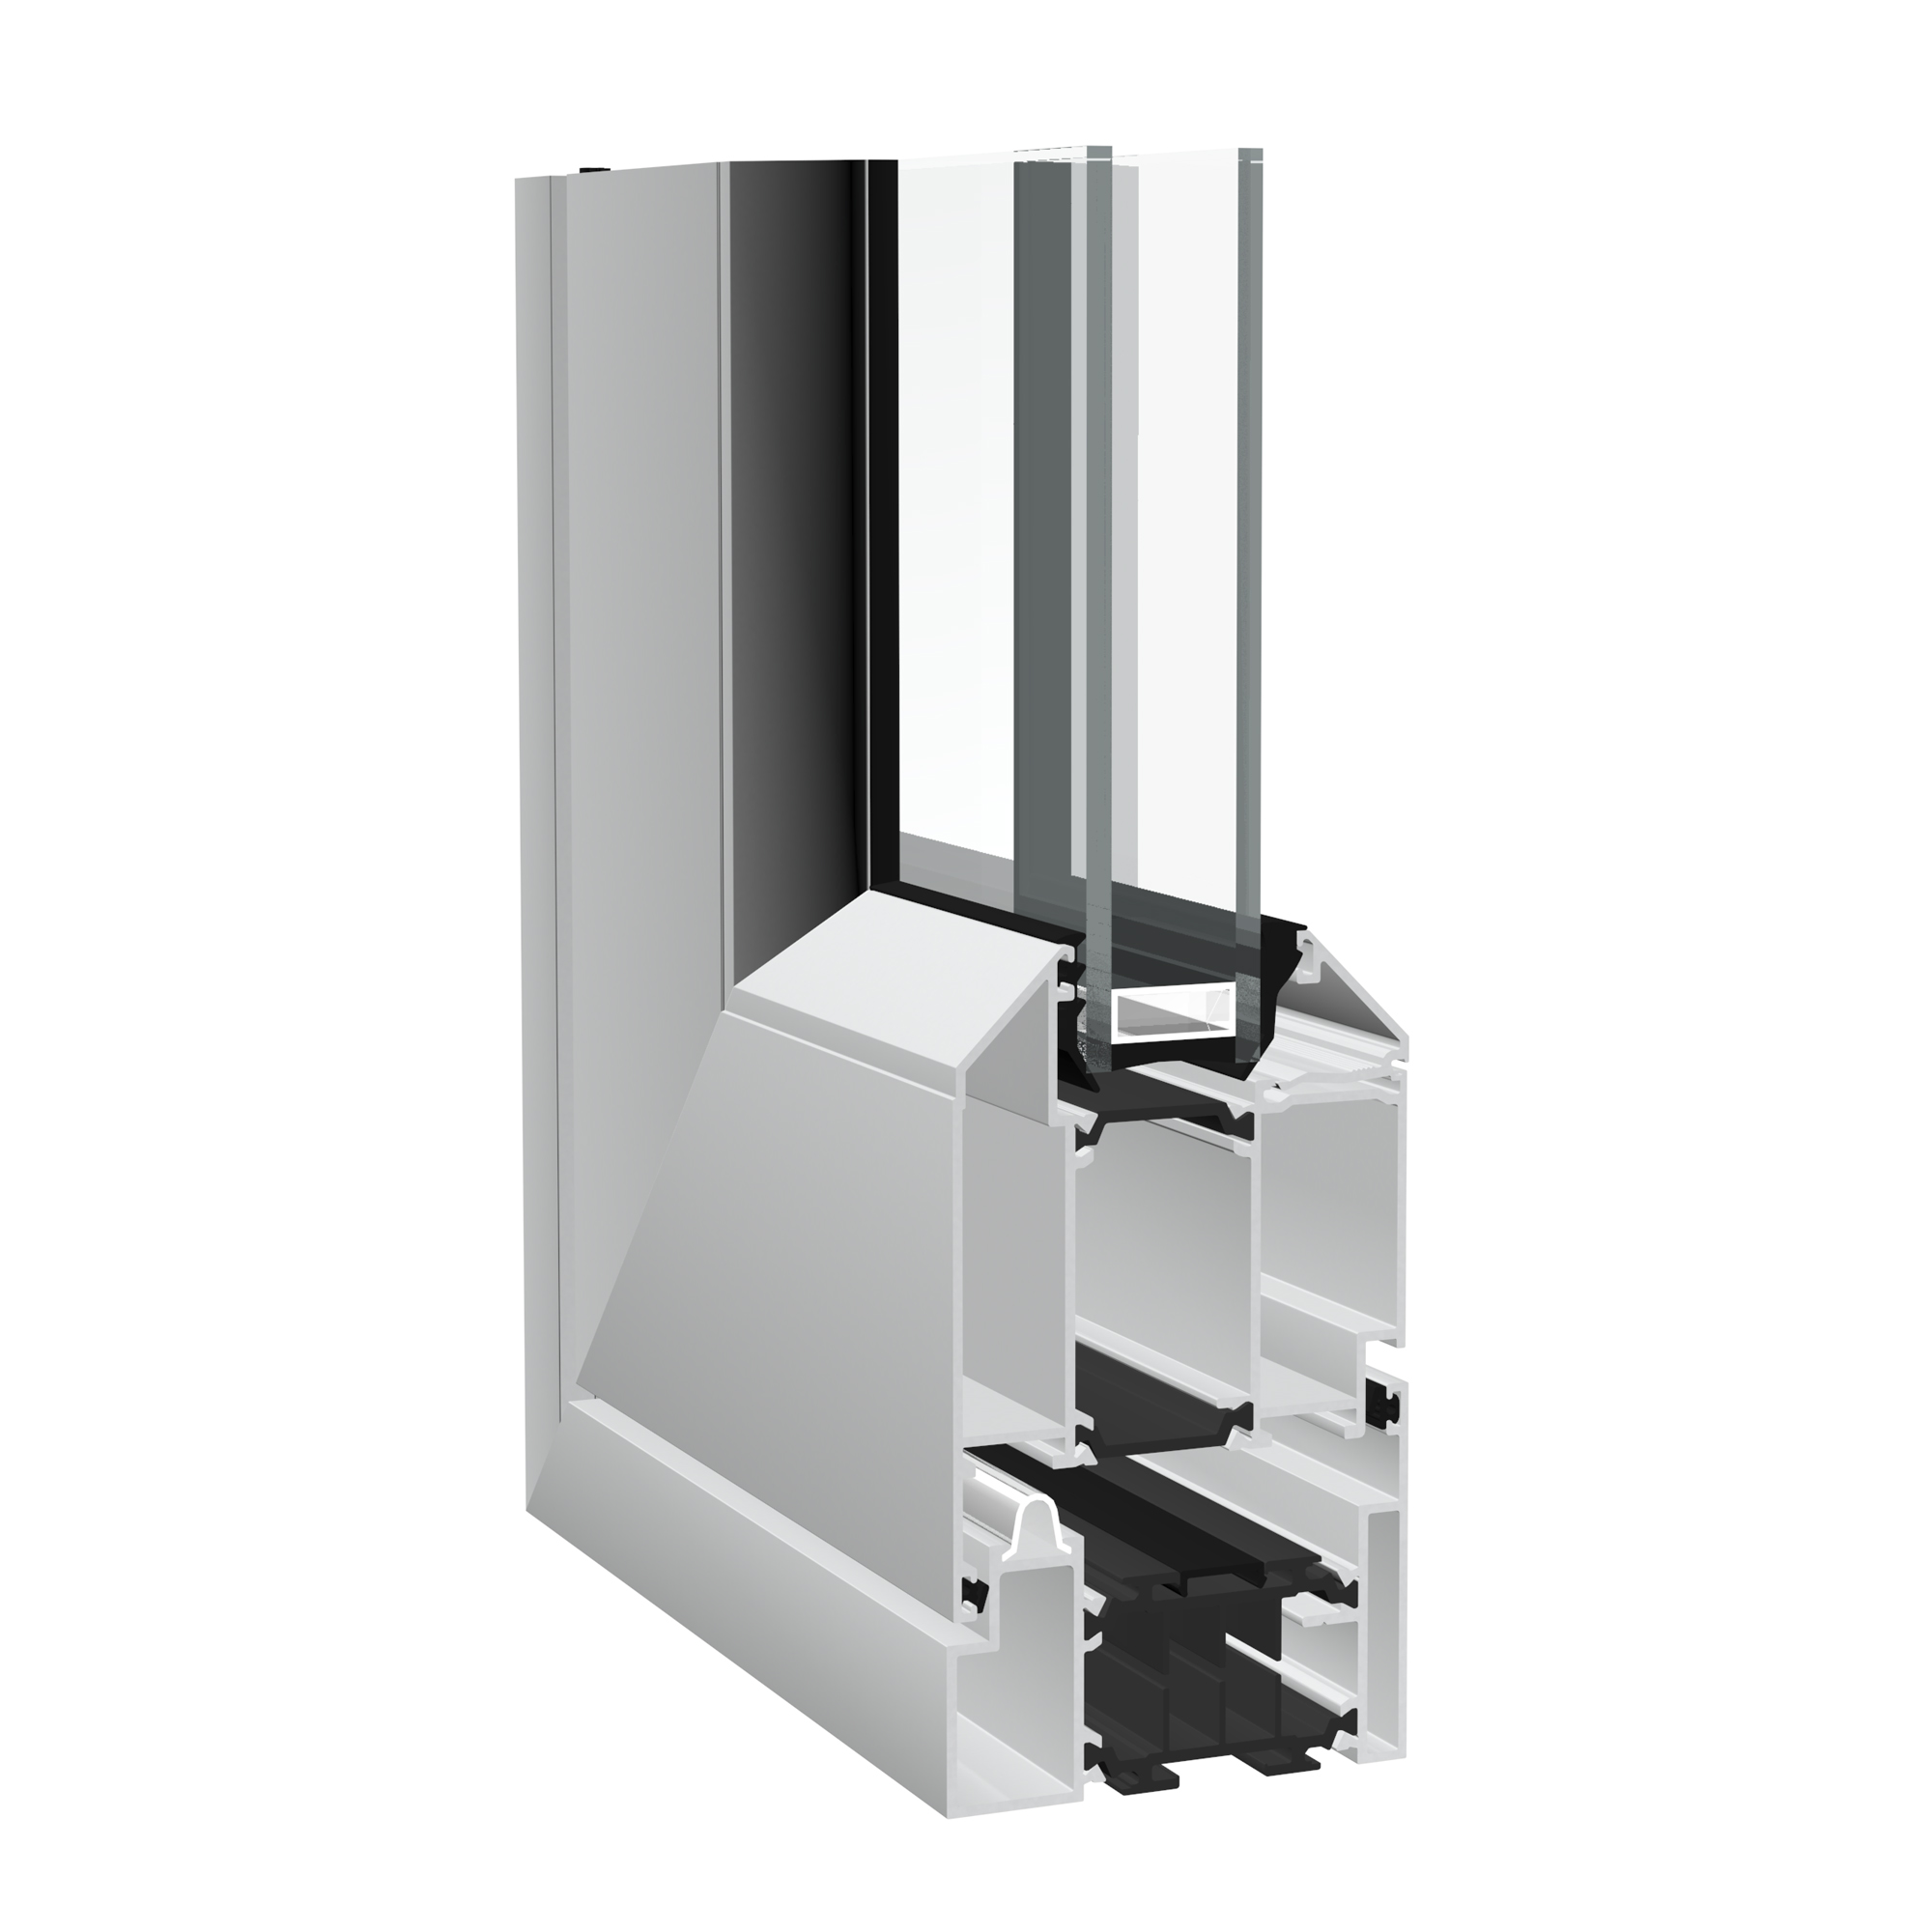 Crown aluminium sliding/folding door from Sapa